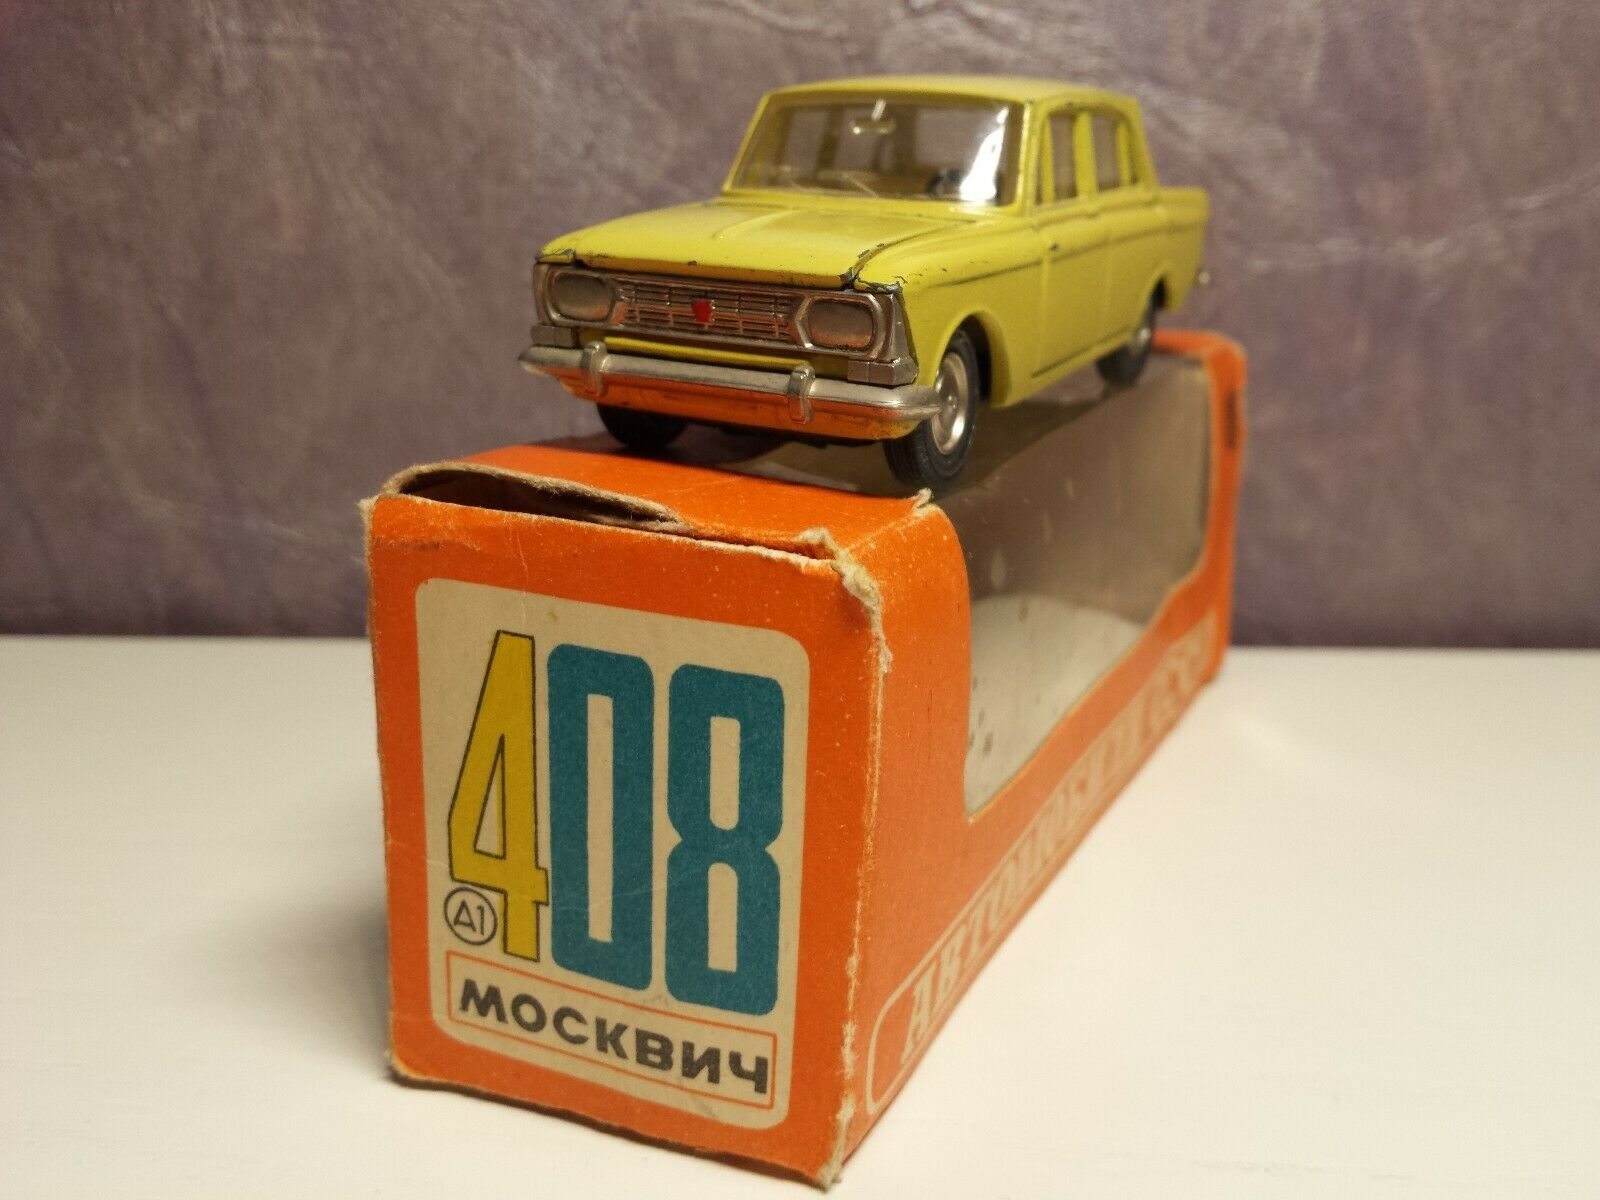 RARE MOSKVITCH 408 A1 Original 1 43 avril 1976 made in URSS